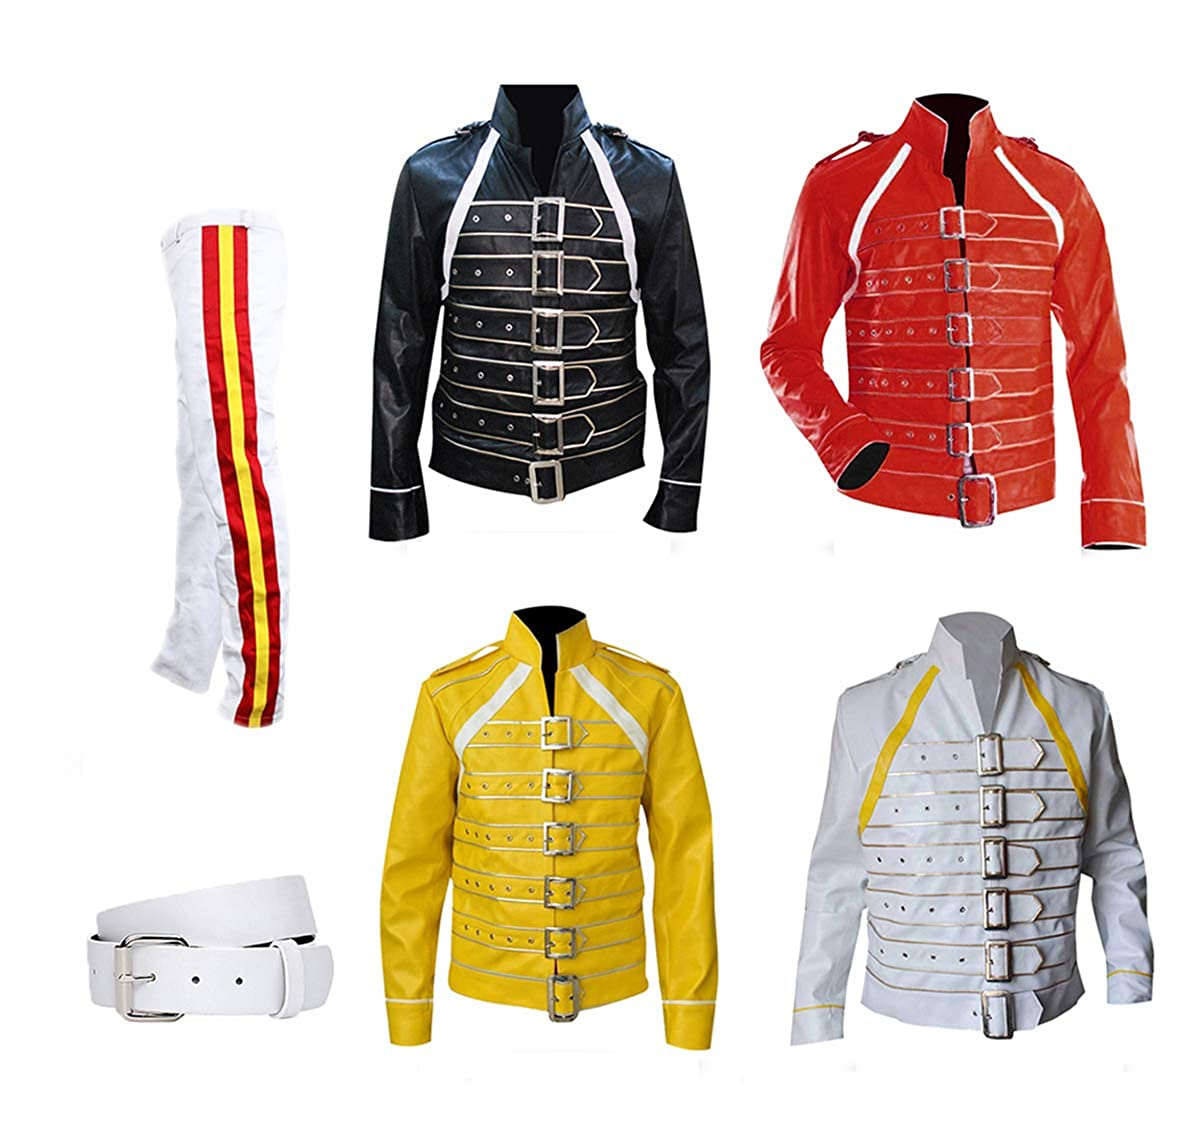 d9a46bed1 Freddie Mercury Concert Queen Synthetic Jackets